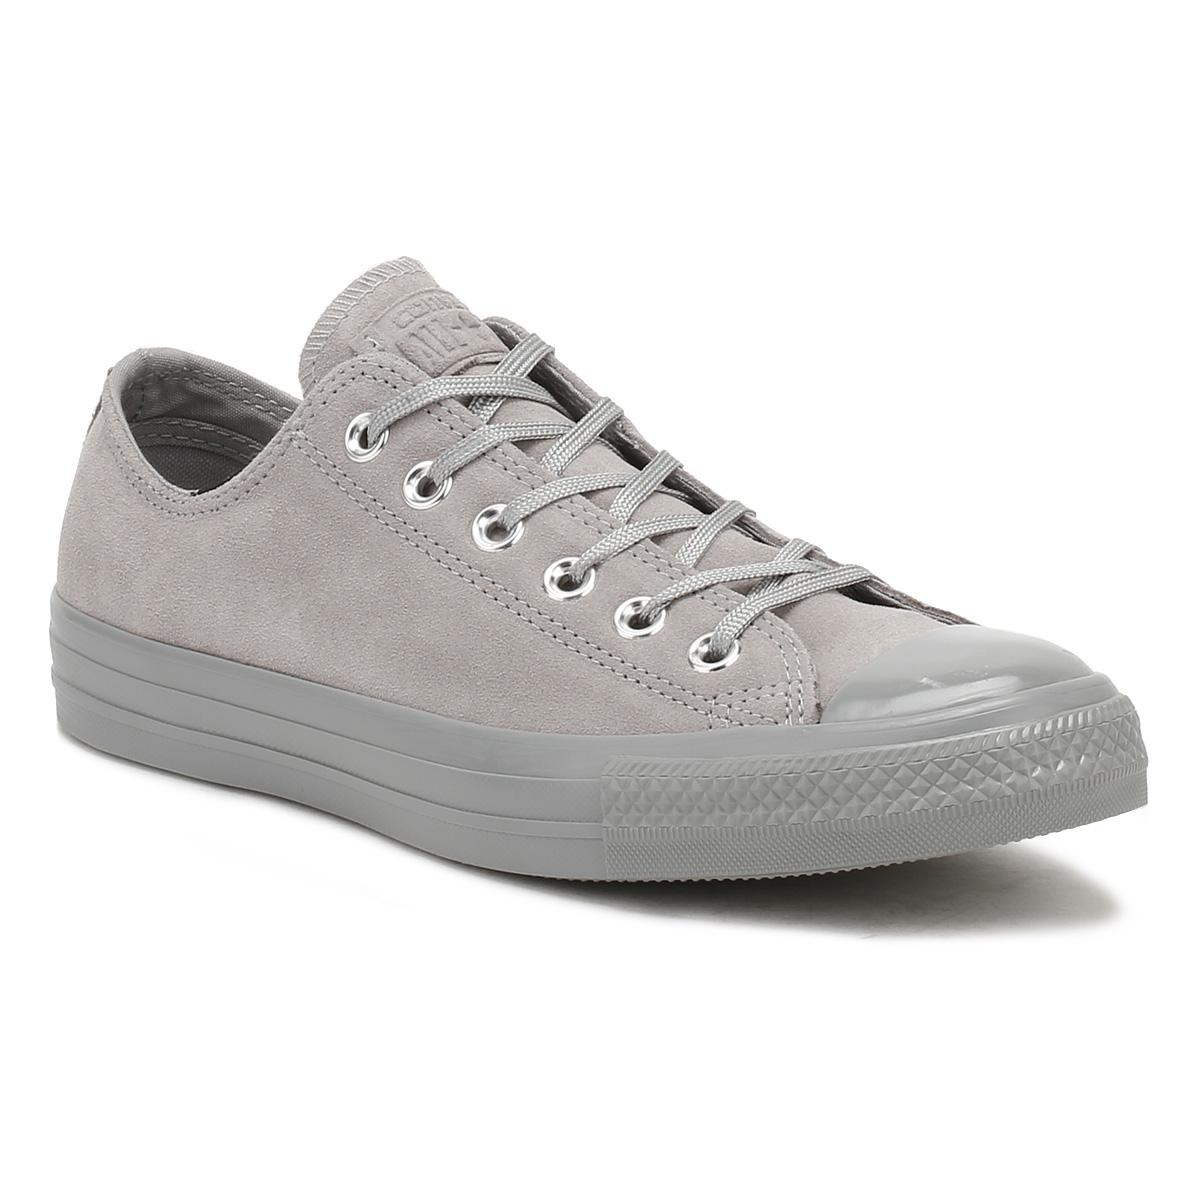 3fccae30f26e Gallery. Previously sold at  TOWER London · Women s Converse Chuck Taylor  ...